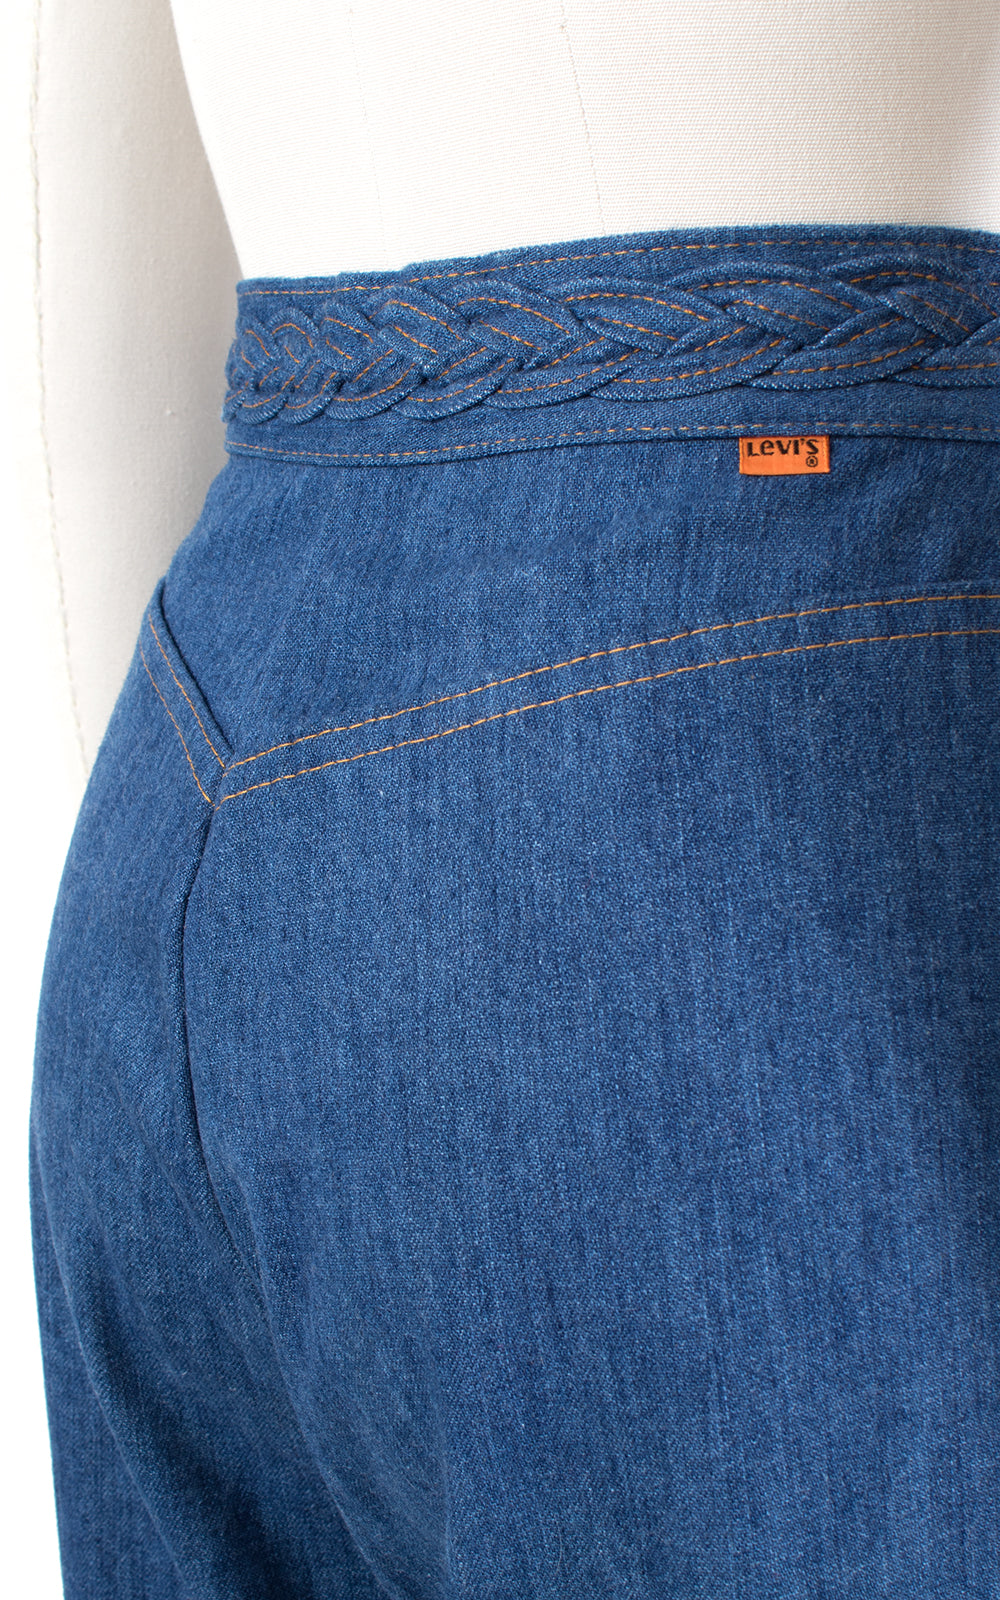 1970s Levis Orange Tab Braided Waist Bell Bottom Jeans